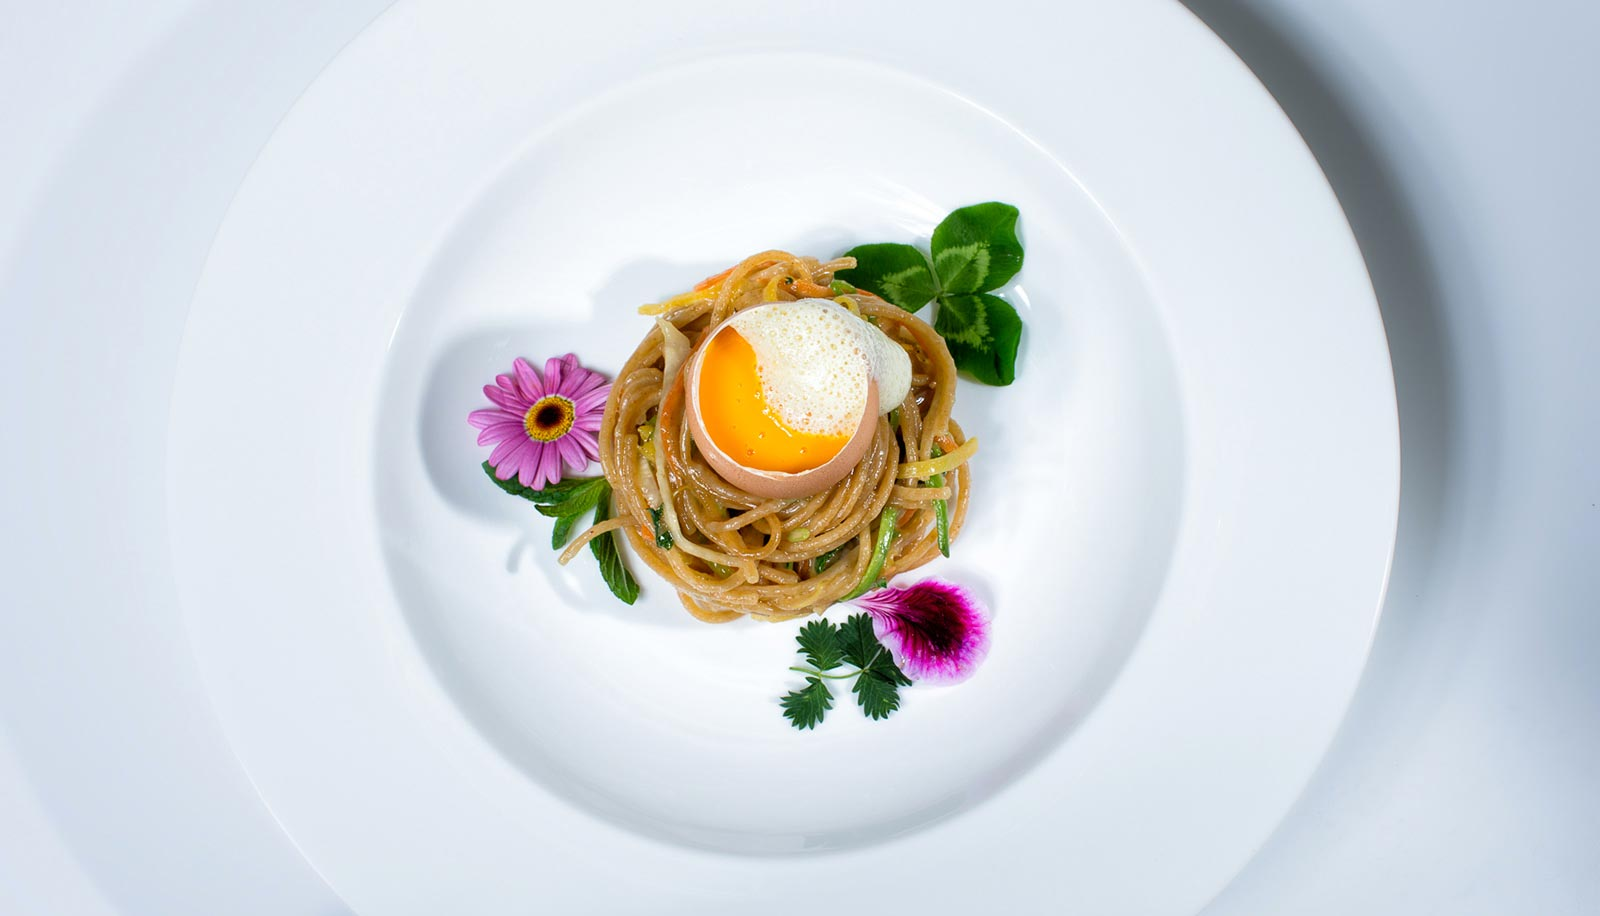 Spaghetti with vegetables and a whole egg, decorated with flowers